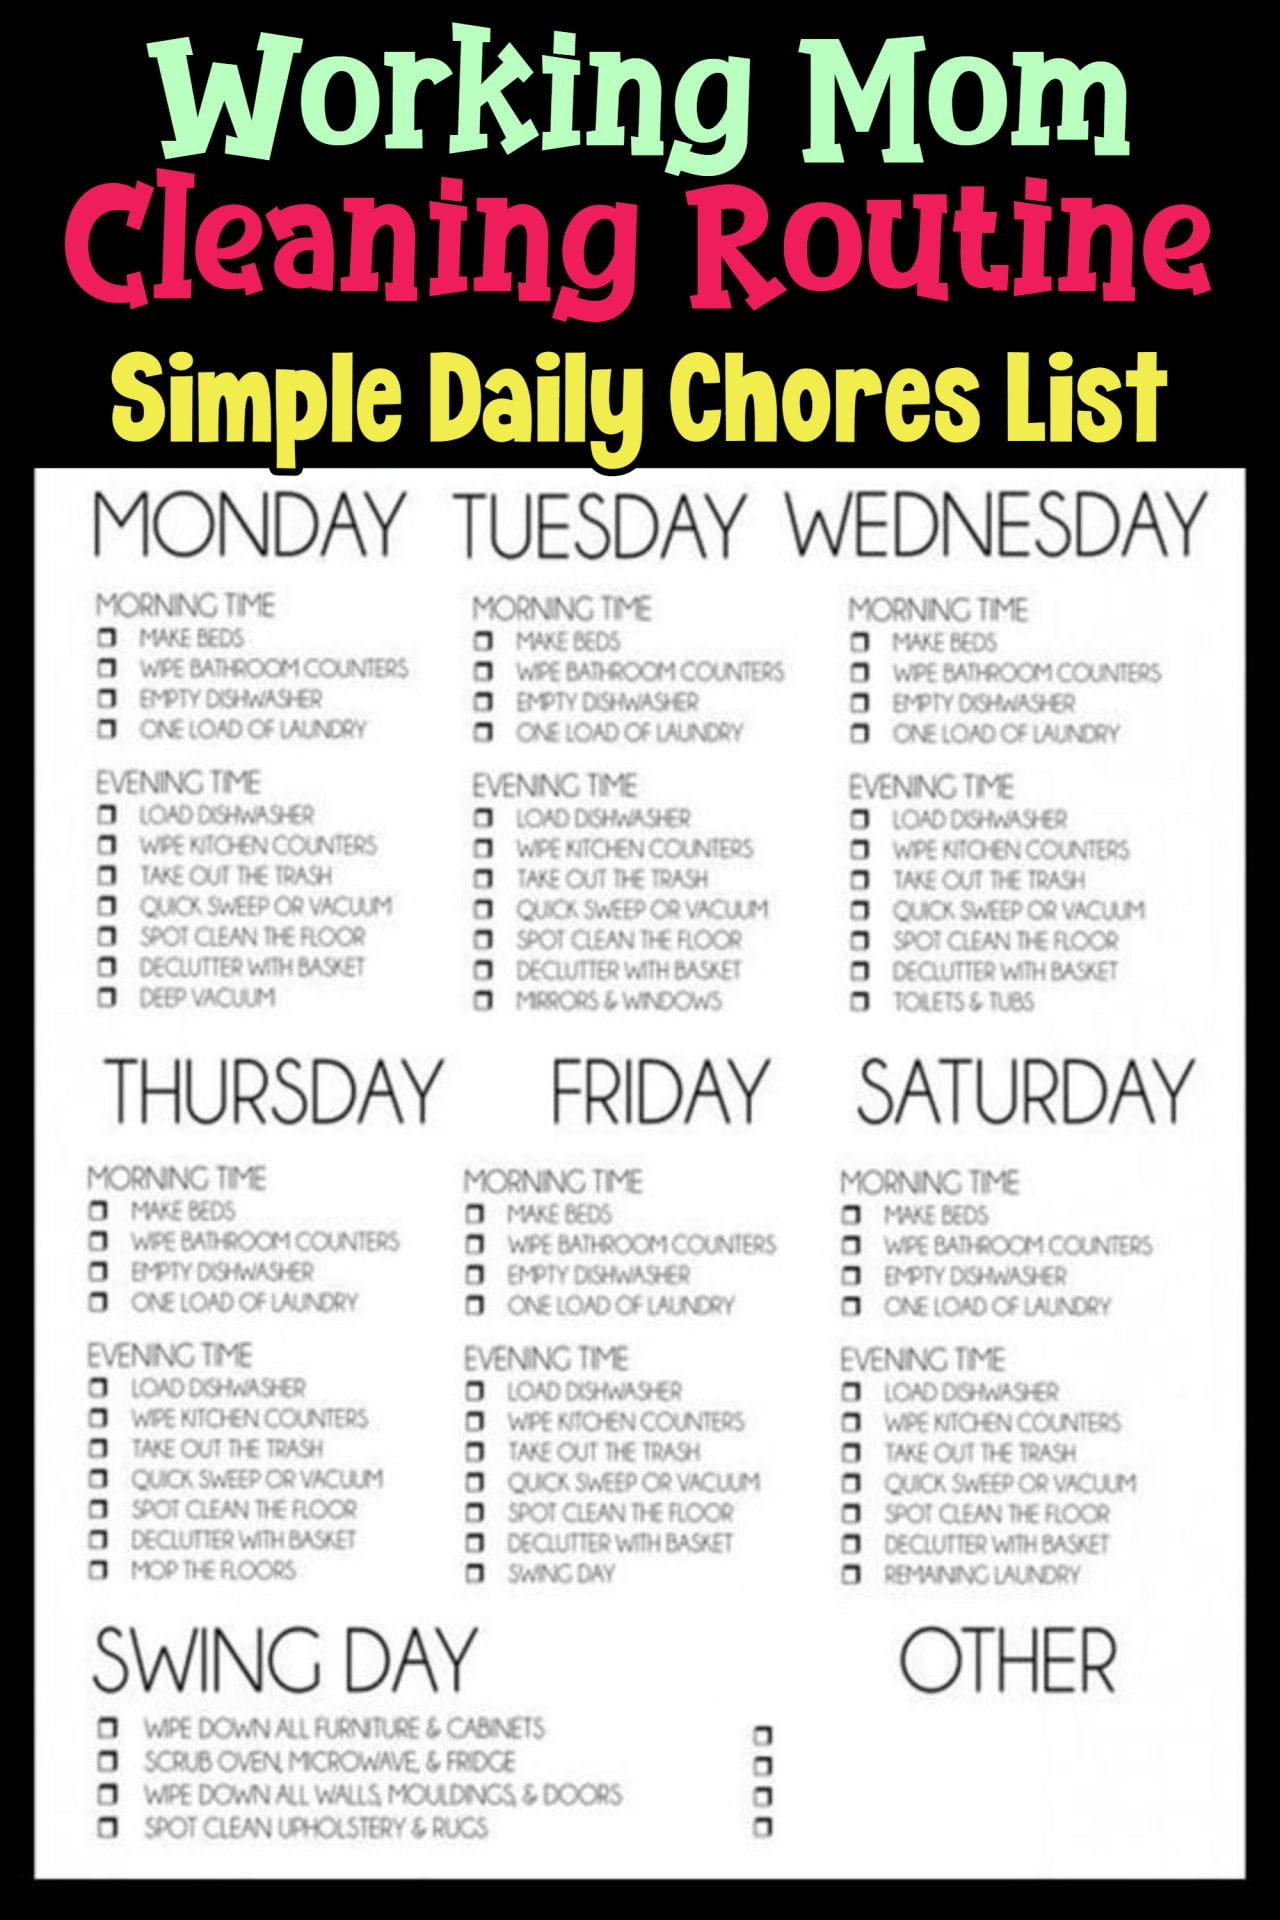 Working mom cleaning routine and cleaning schedule for working moms or working parents - simple daily chores to do each day and each night to keep your house cleaning - easy cleaning schedules for busy moms - printable cleaning schedule, cleaning checklists and cleaning routines